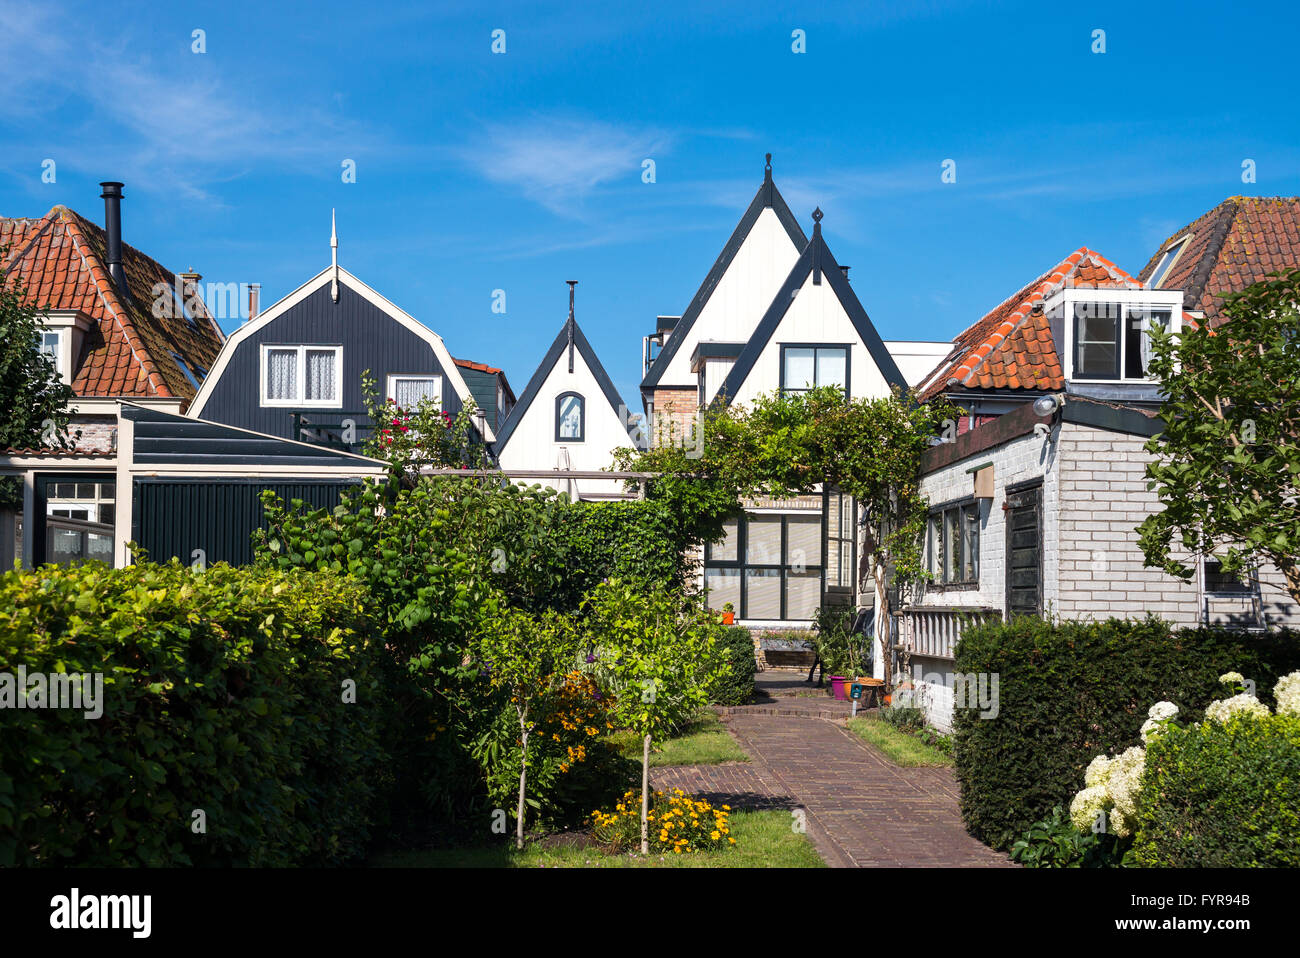 Amsterdam, Waterland district, Marken, view of the traditional house of the village Stock Photo